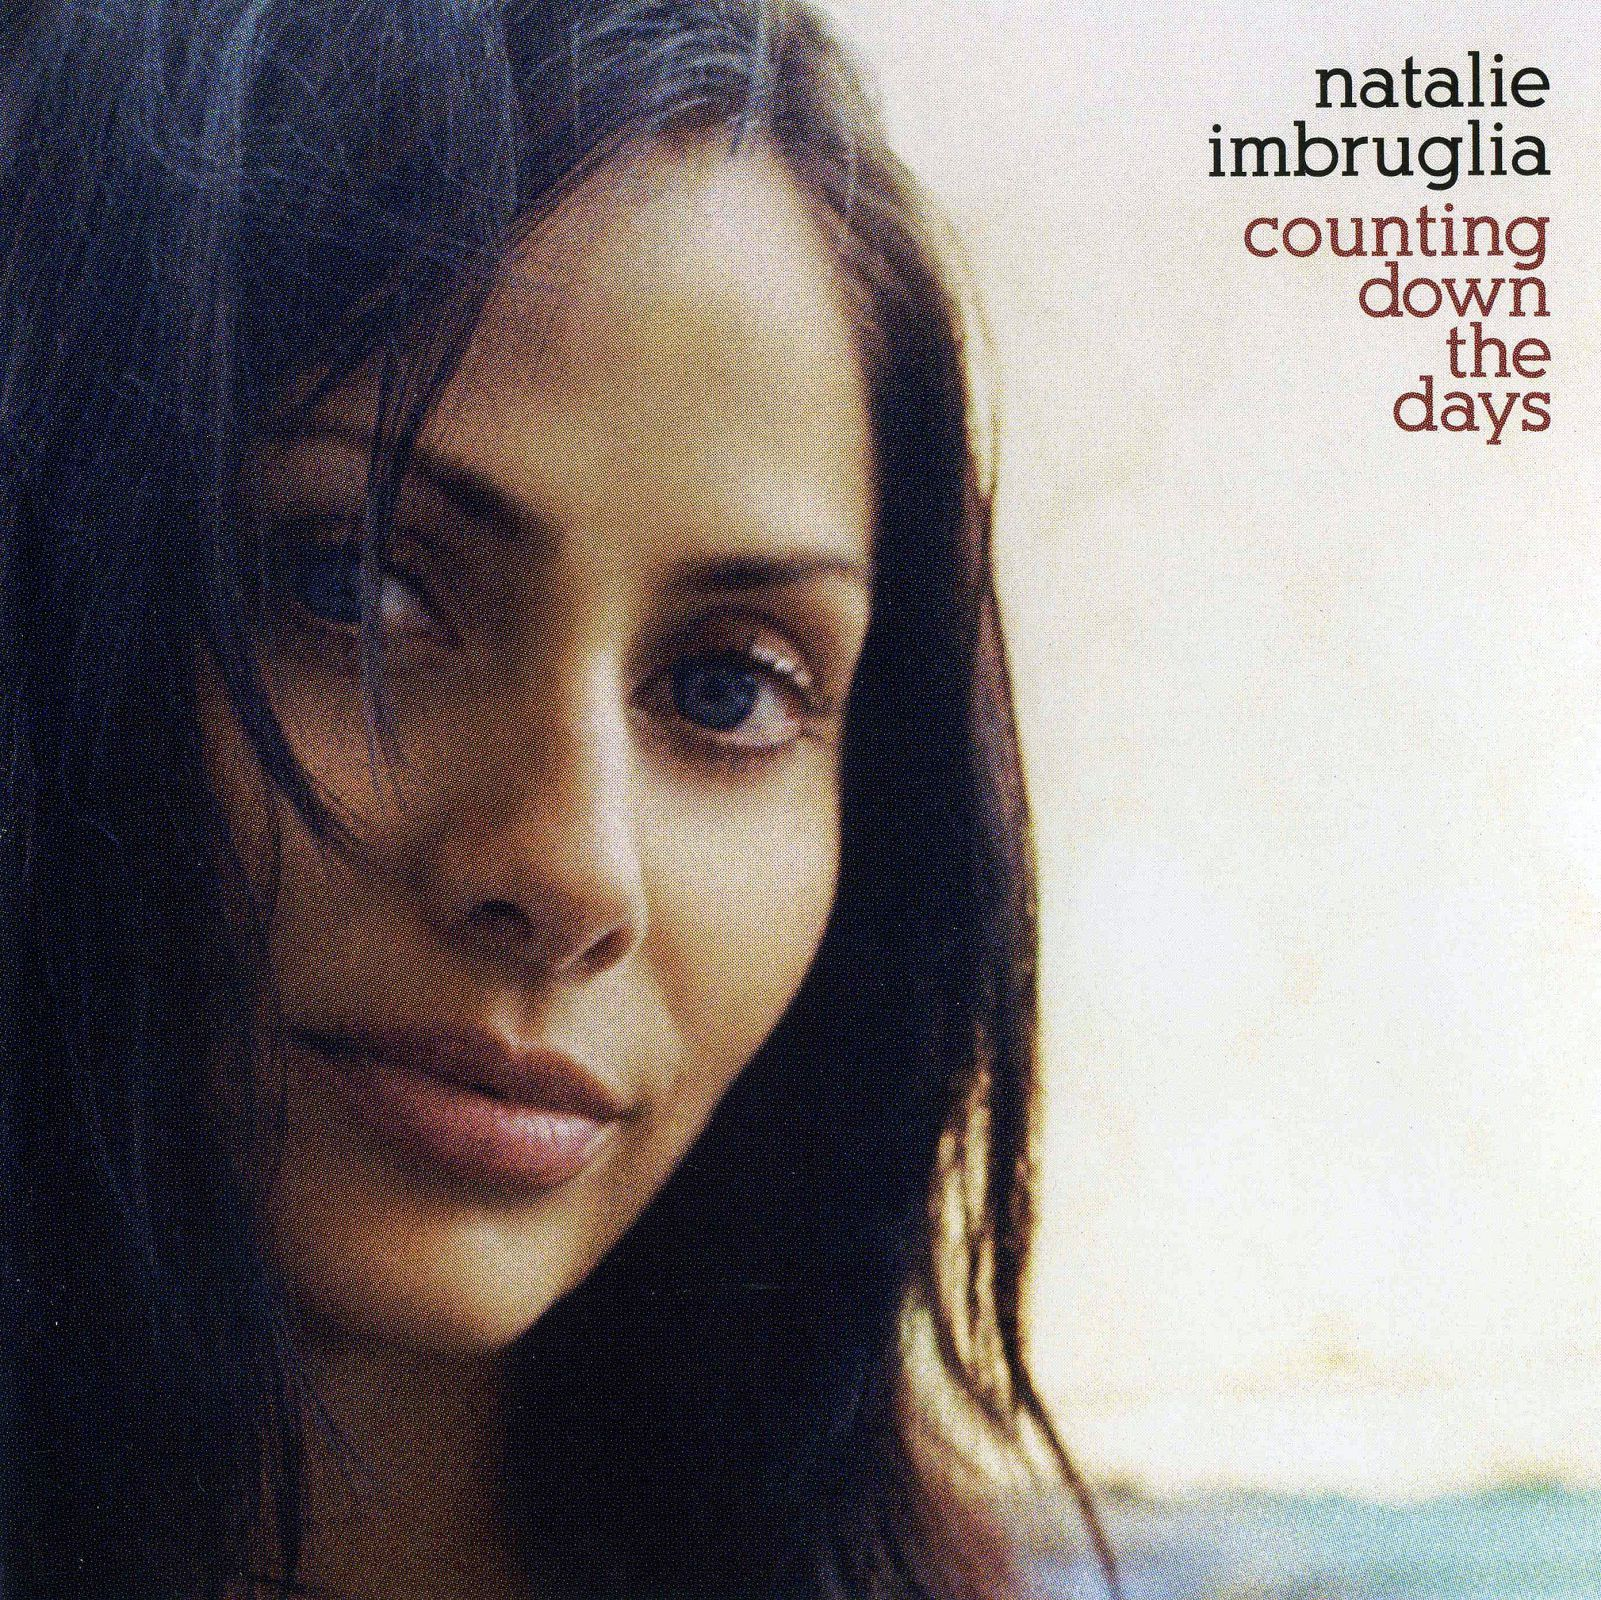 Natalie Imbruglia - Counting Down The Days album cover